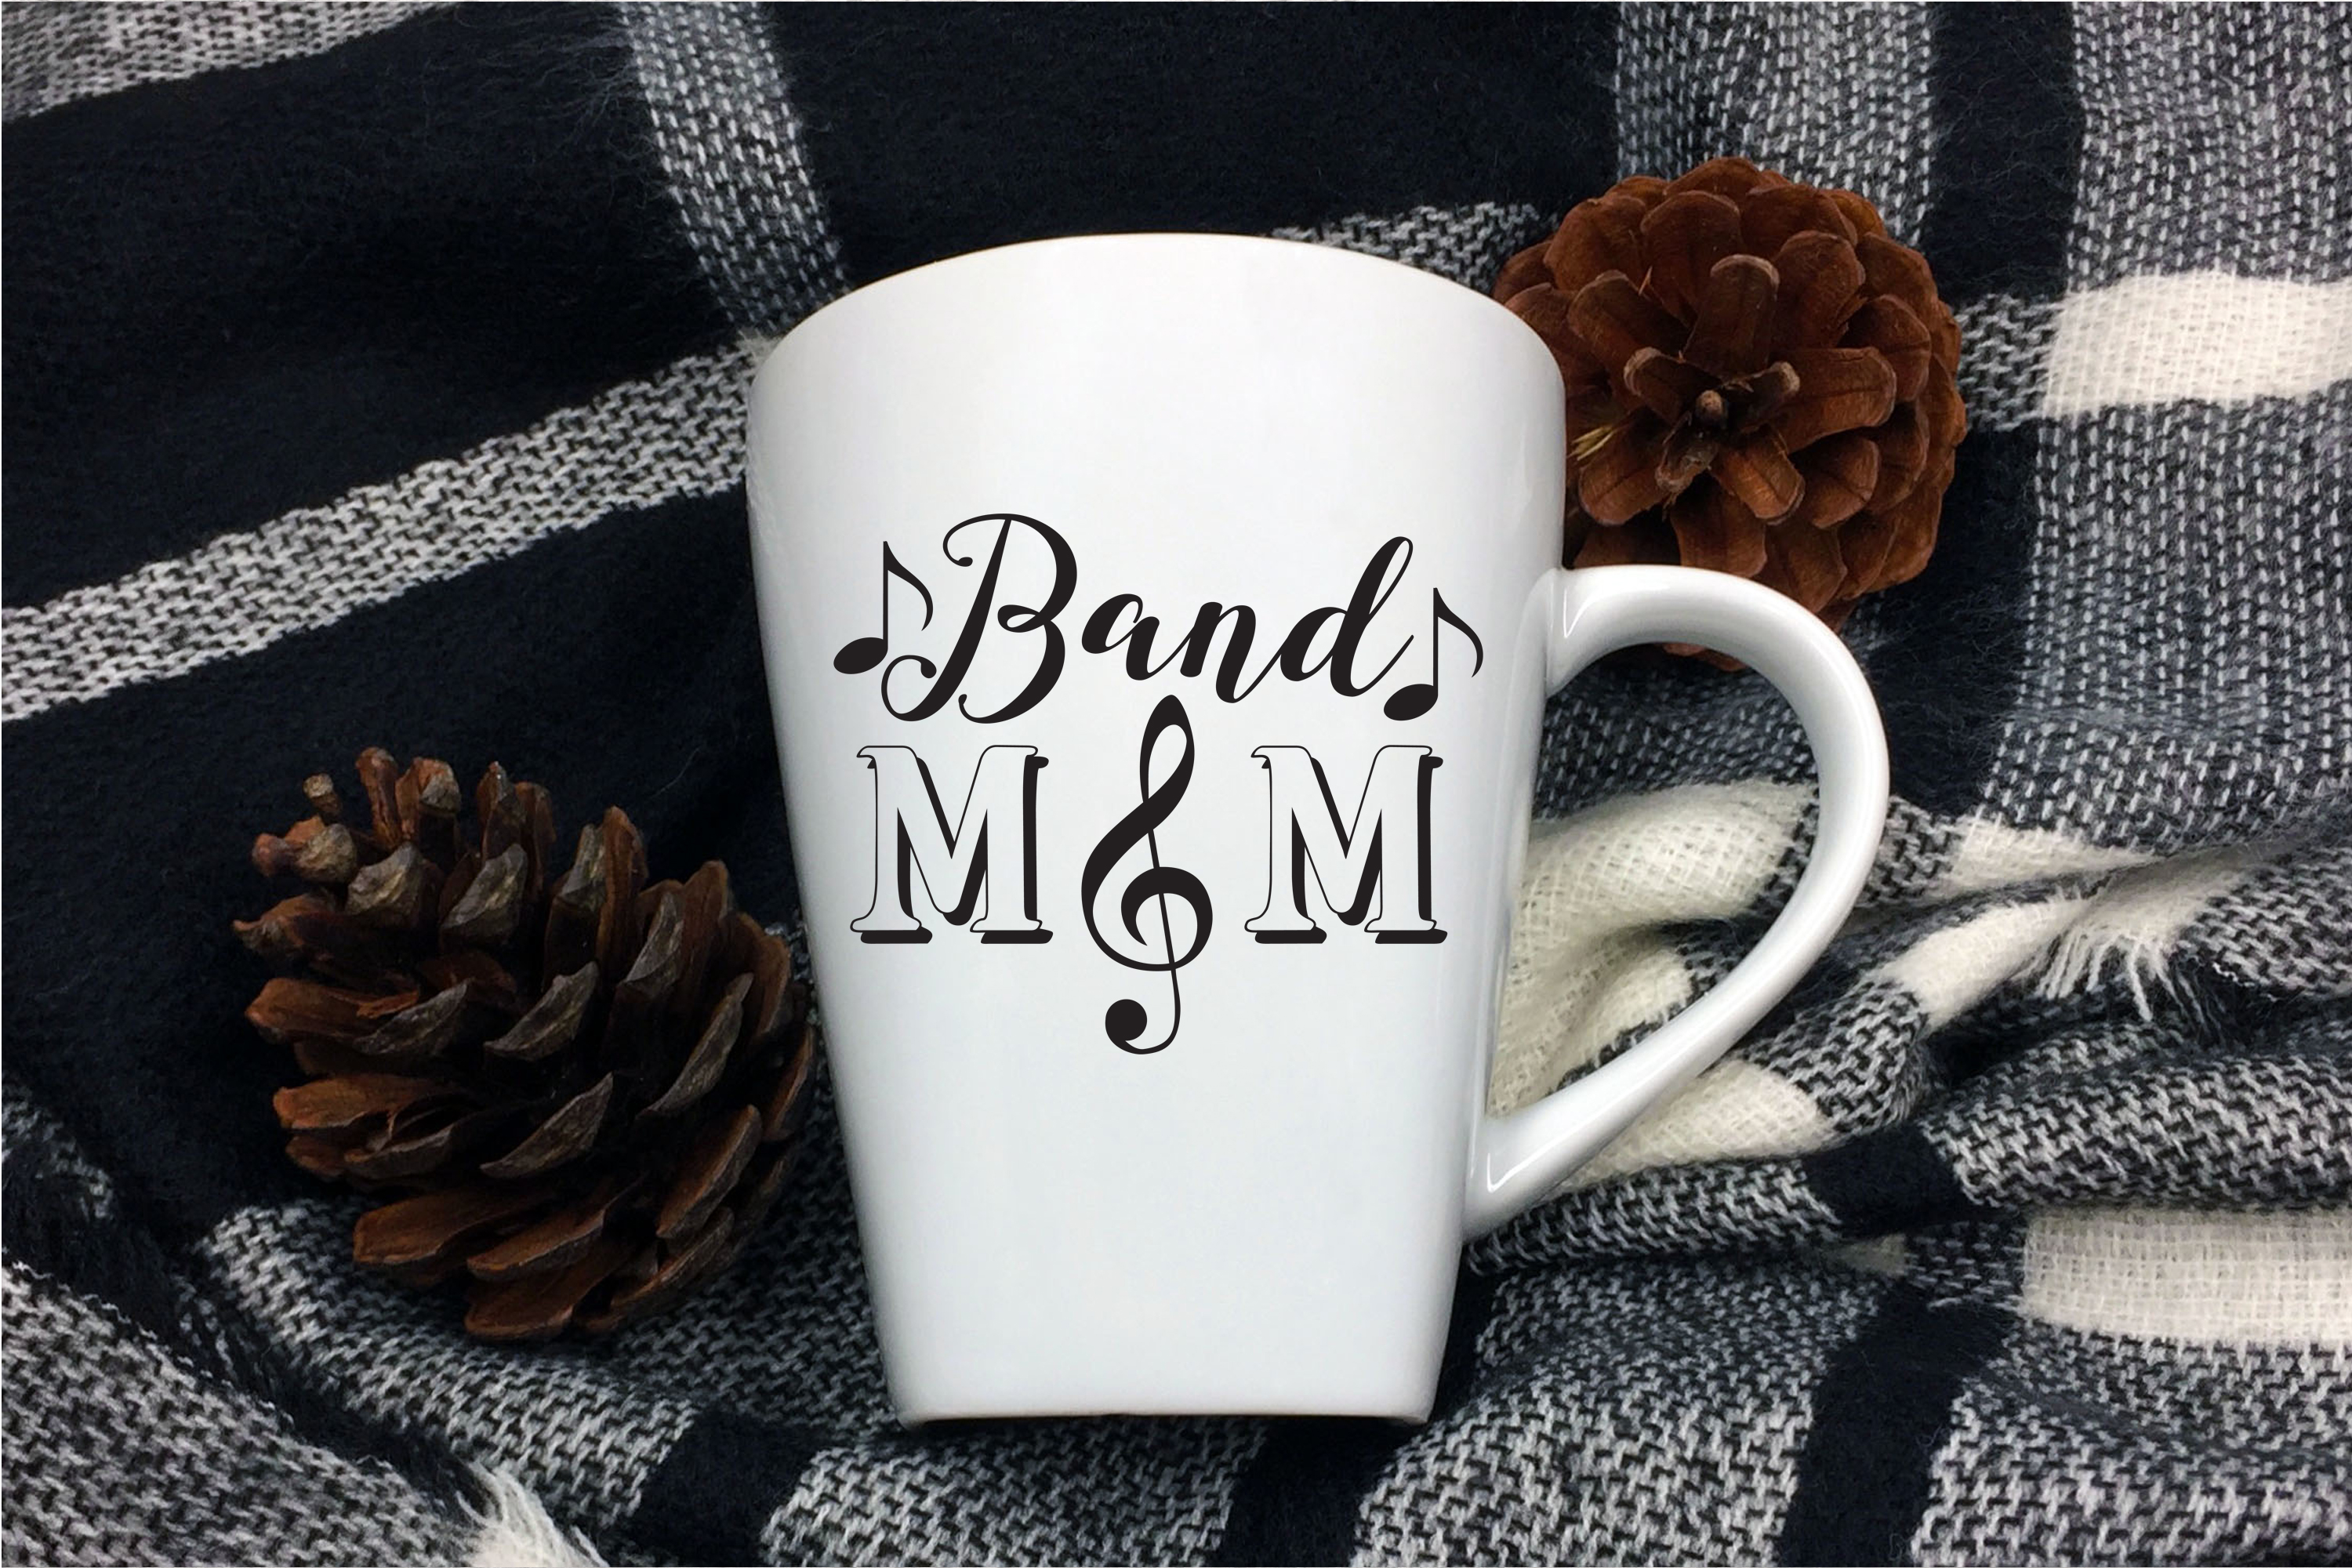 Band Mom SVG | Band Mom Clef SVG example image 2